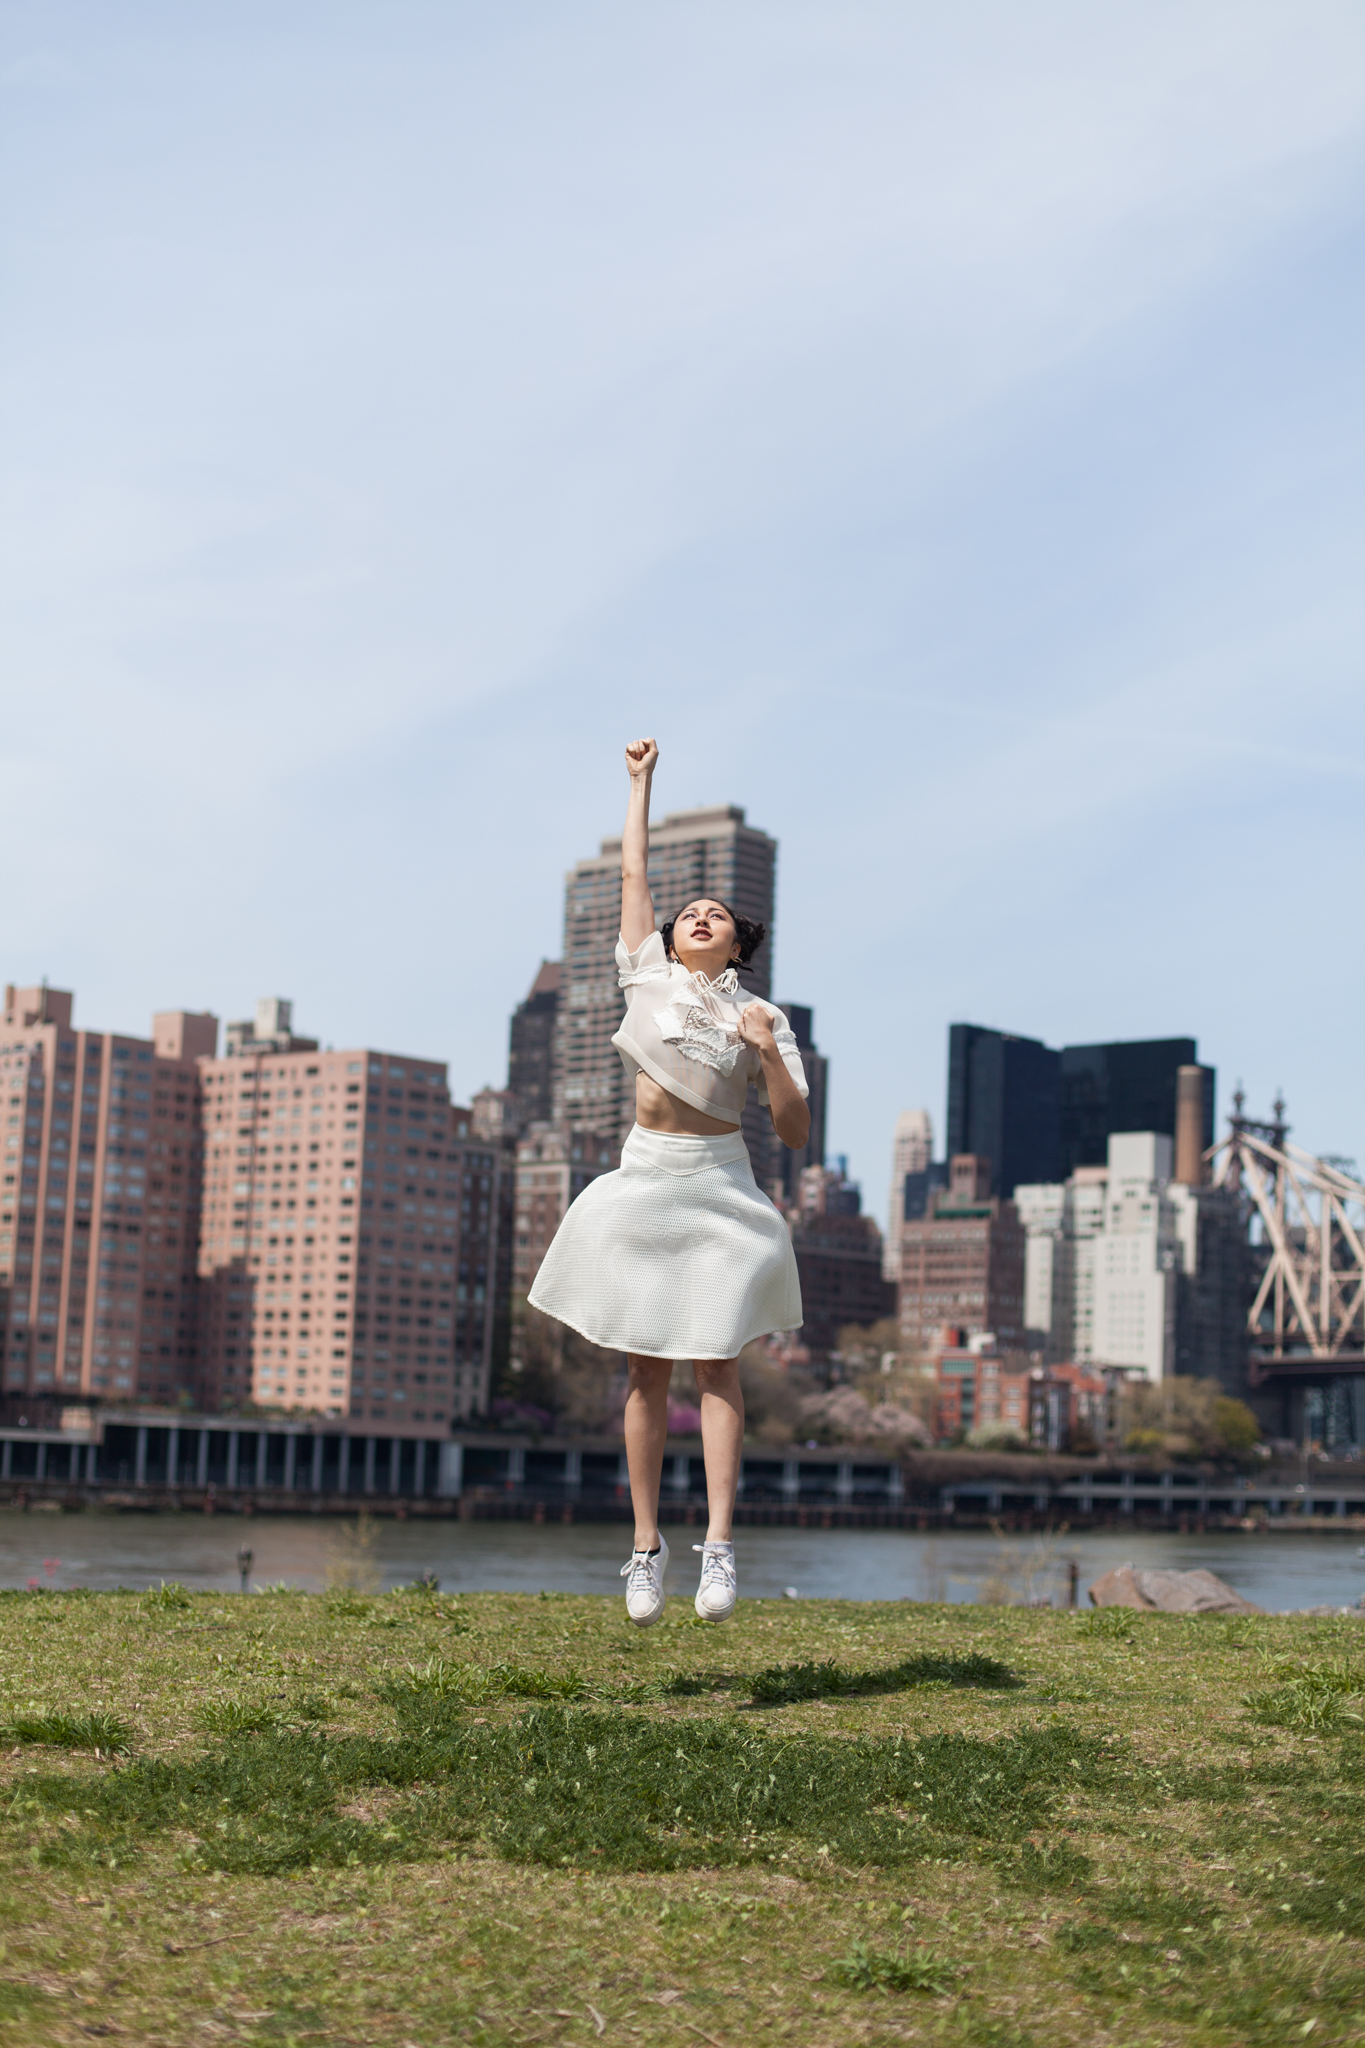 whomstudio_yurie-collins_roosevelt-island-nyc-0187_web.jpg